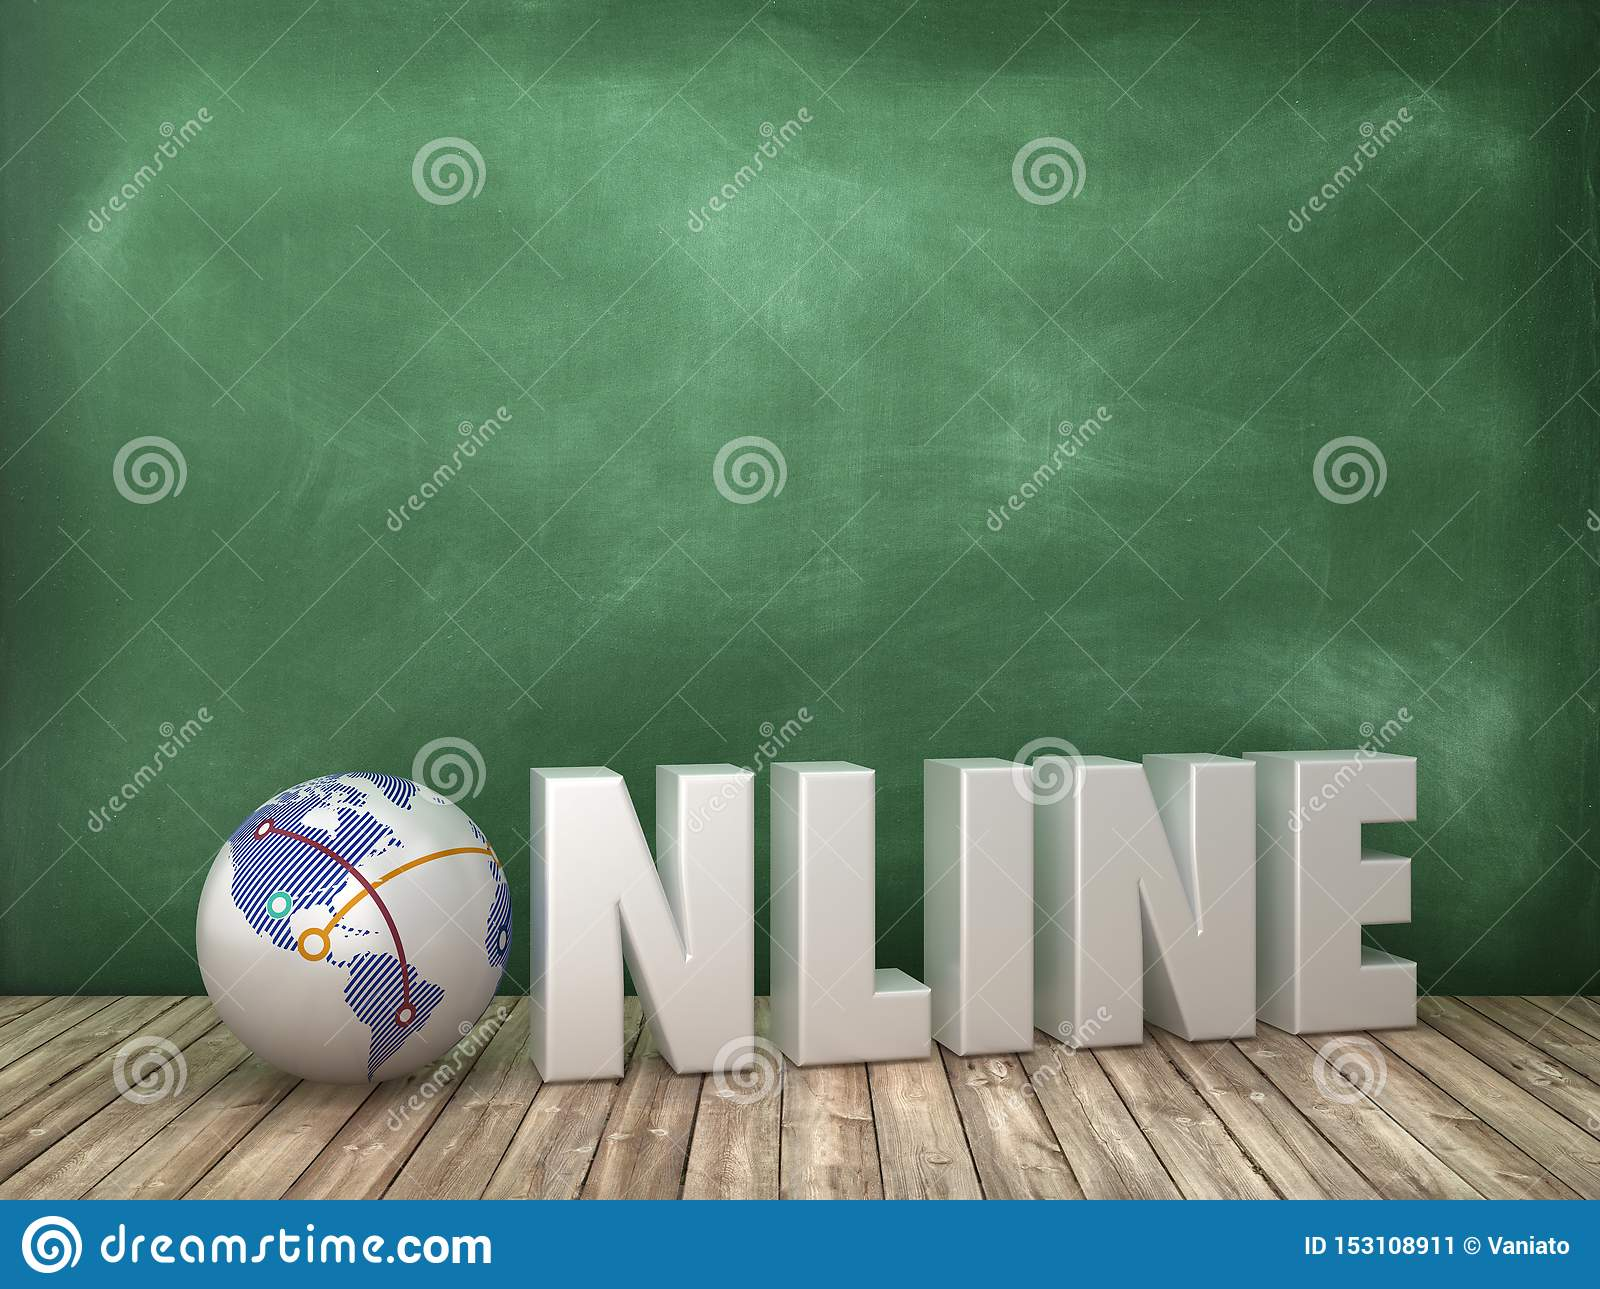 ONLINE 3D Word with Globe World on Chalkboard Background